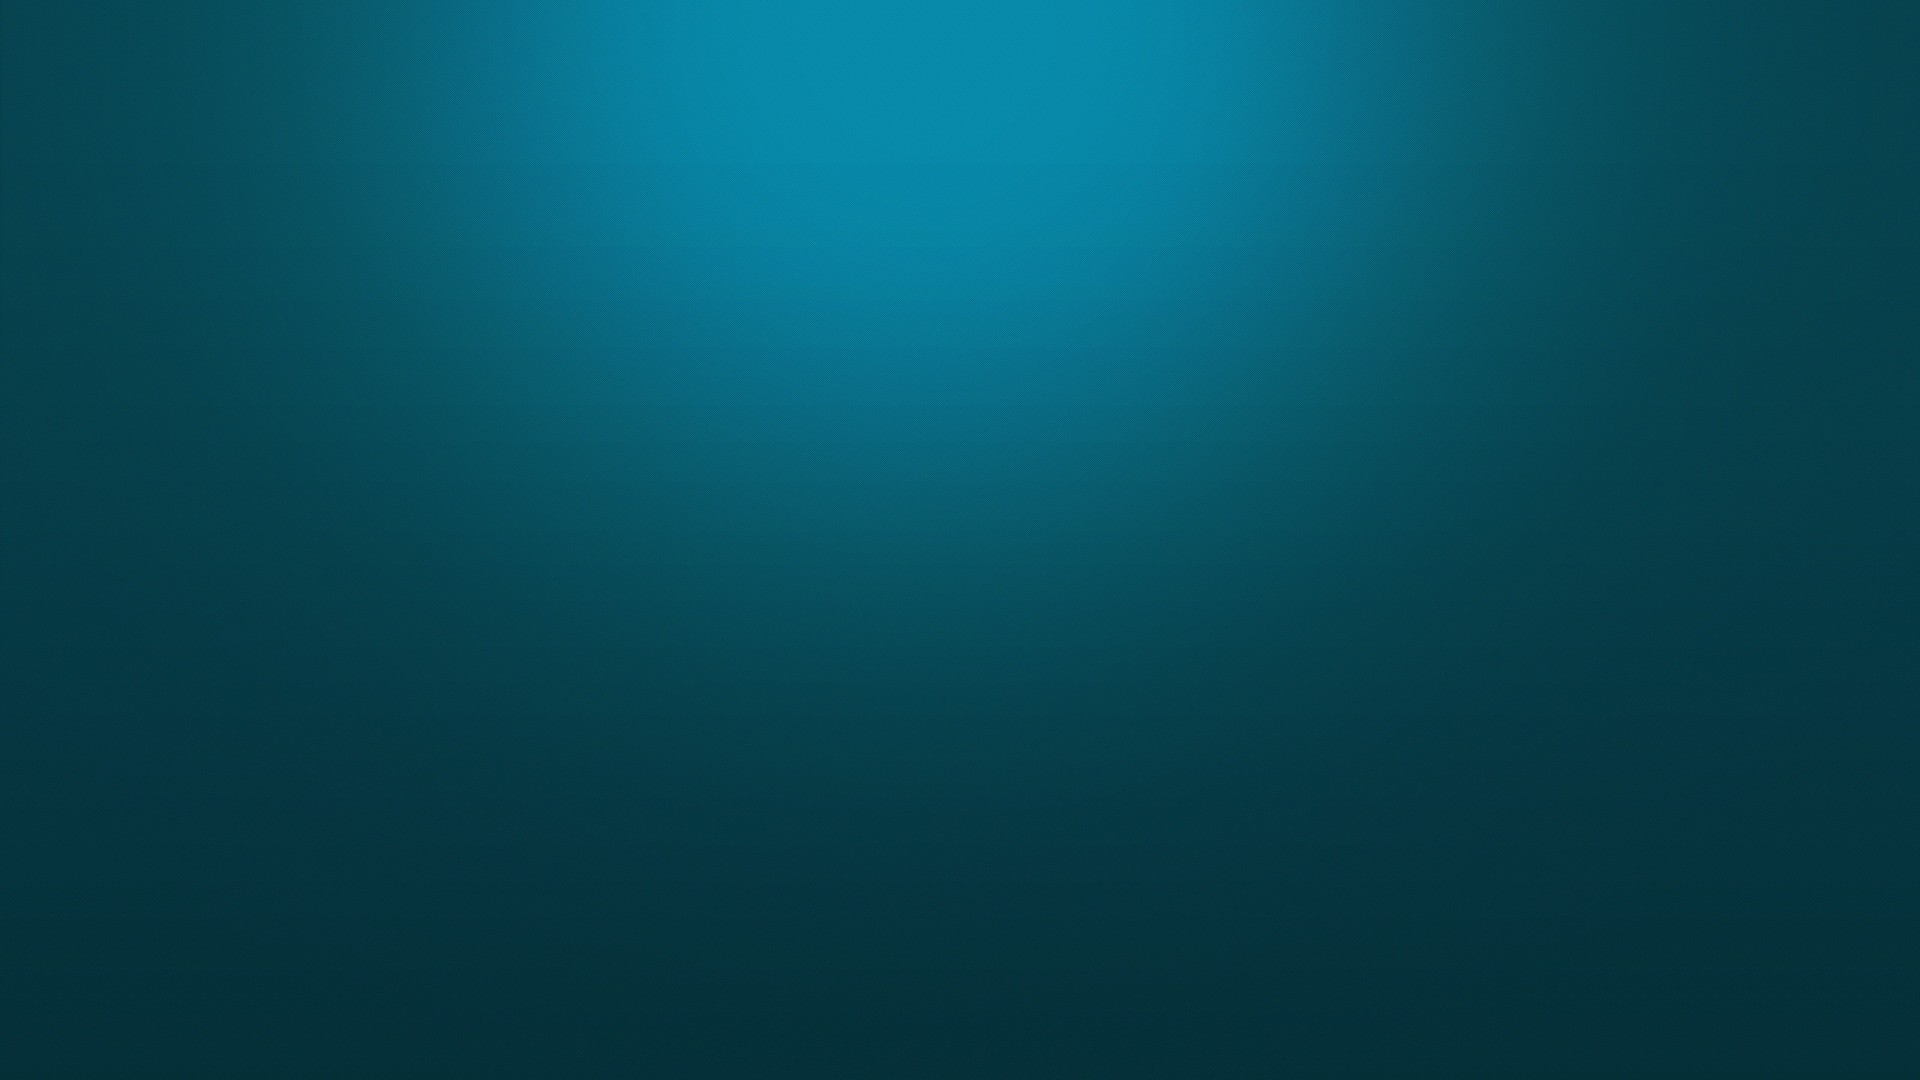 Wallpaper color, background, surface, solid